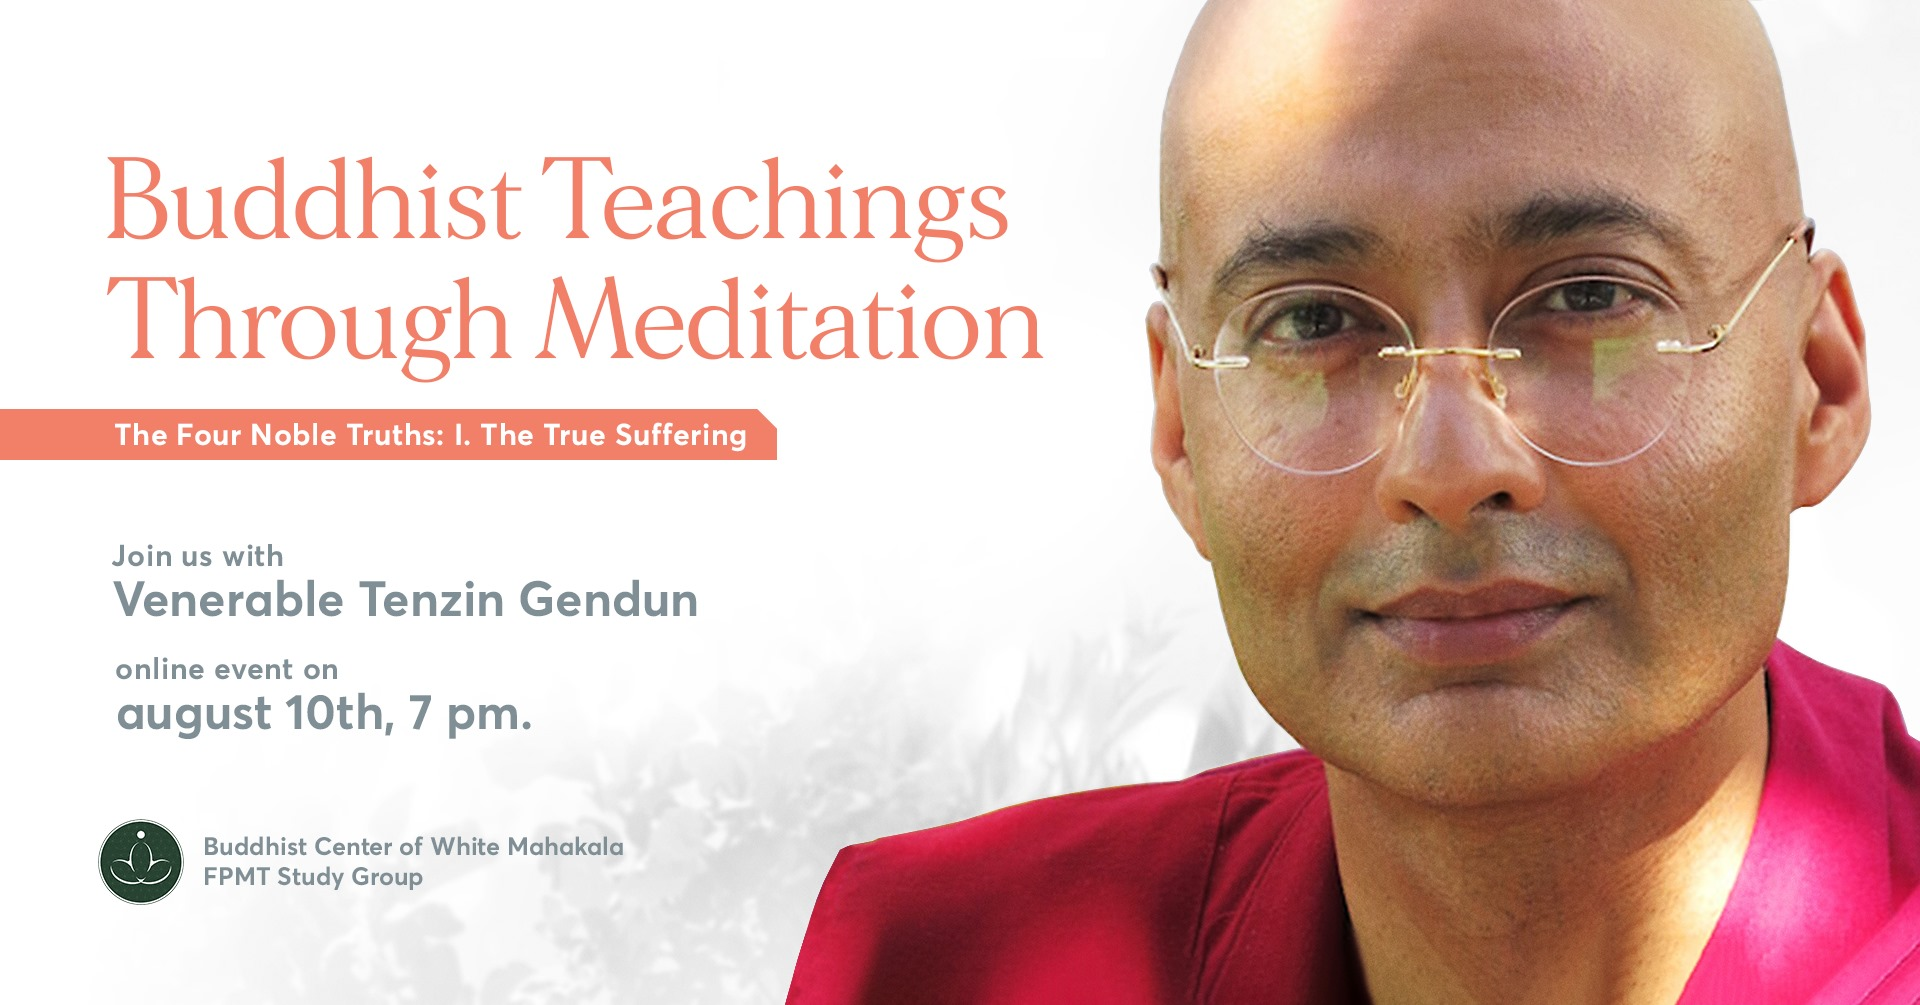 The True Suffering (Buddhist Teachings Through Meditation) with ven. Gendun